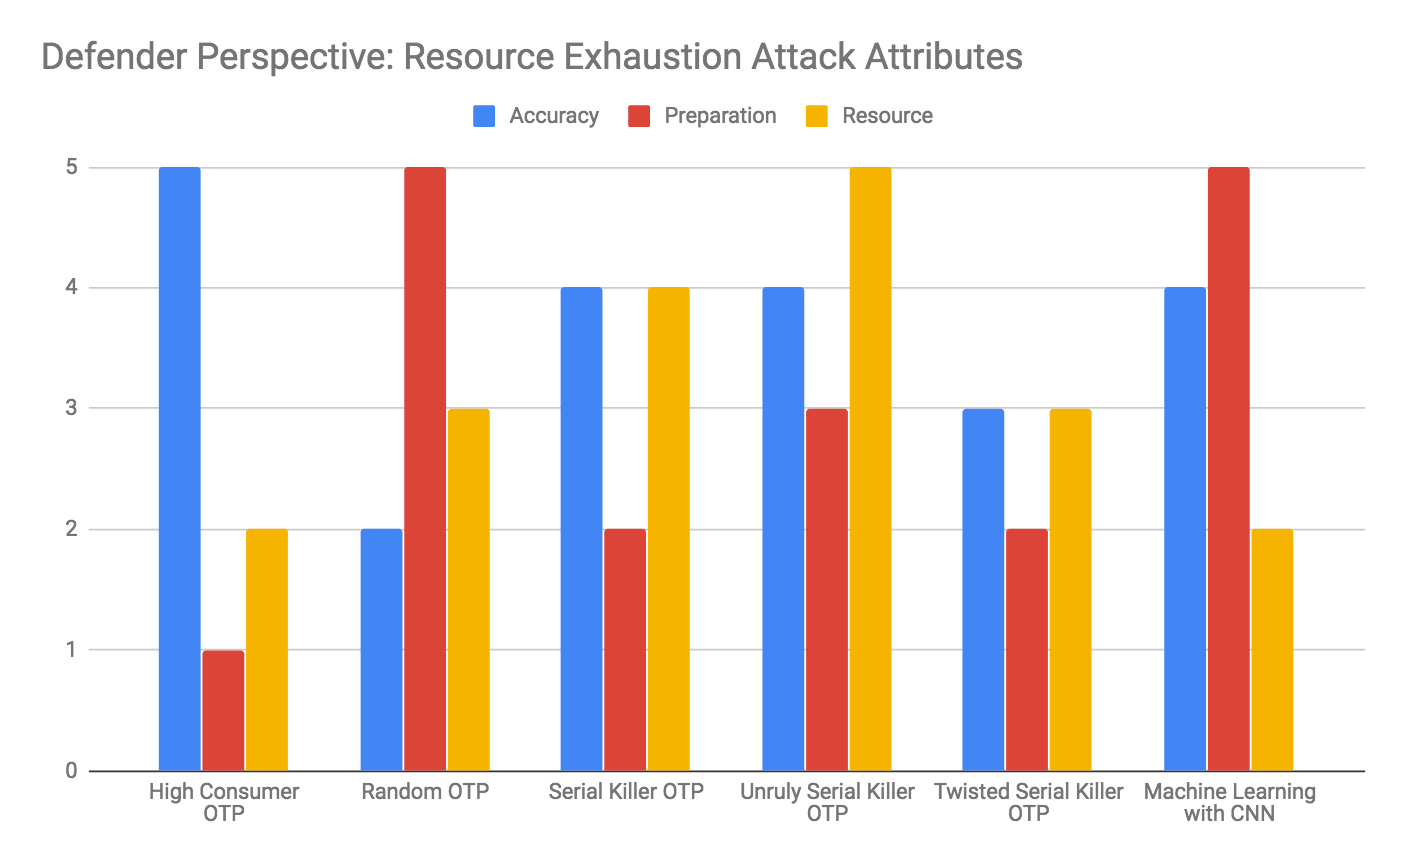 Defender Perspective: Resource Exhaustion Attack Attributes